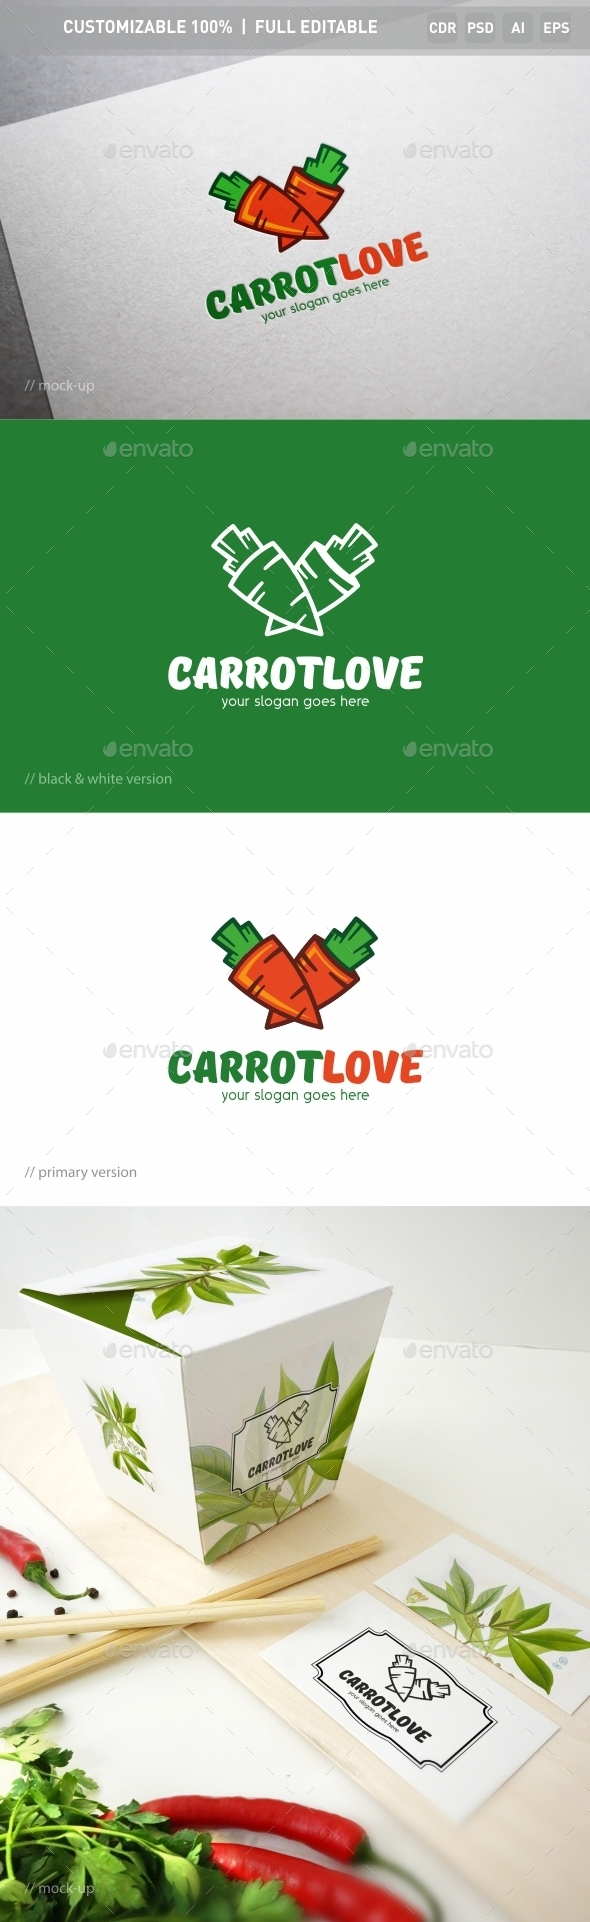 Carrot Love Logo Template - Food Logo Templates